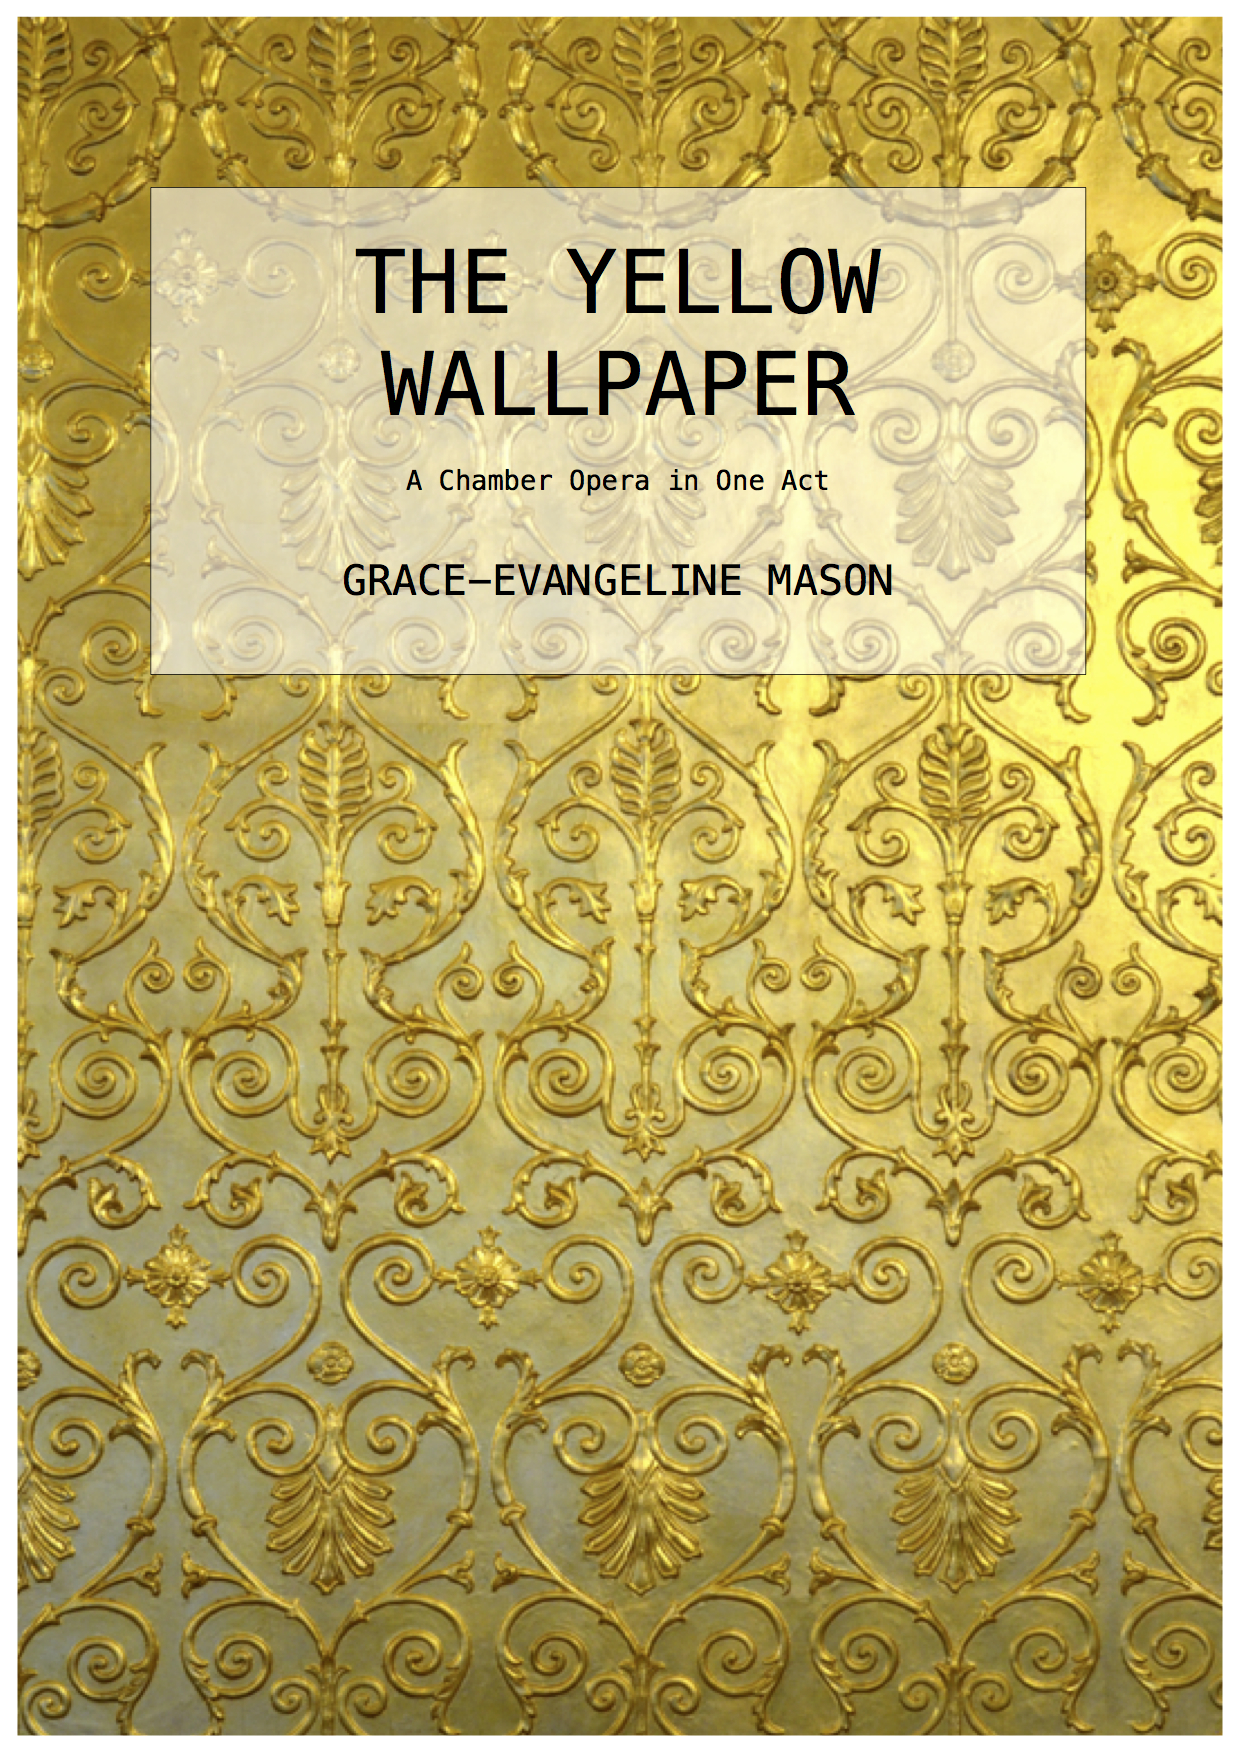 'The Yellow Wallpaper' (2016) - A Chamber Opera in One ActDuration: 20''The Woman' - soprano'John' - baritone'Jennie/The Woman In The Paper' - mezzo-sopranoflute/picc.clarinet/bass cl.violinviola'celloFirst performed at ENO Lilian Baylis House, London, production by the Helios Collective (25/11/16)©Cover Image: 'The Yellow Wallpaper' by Grace-Evangeline Mason 2016